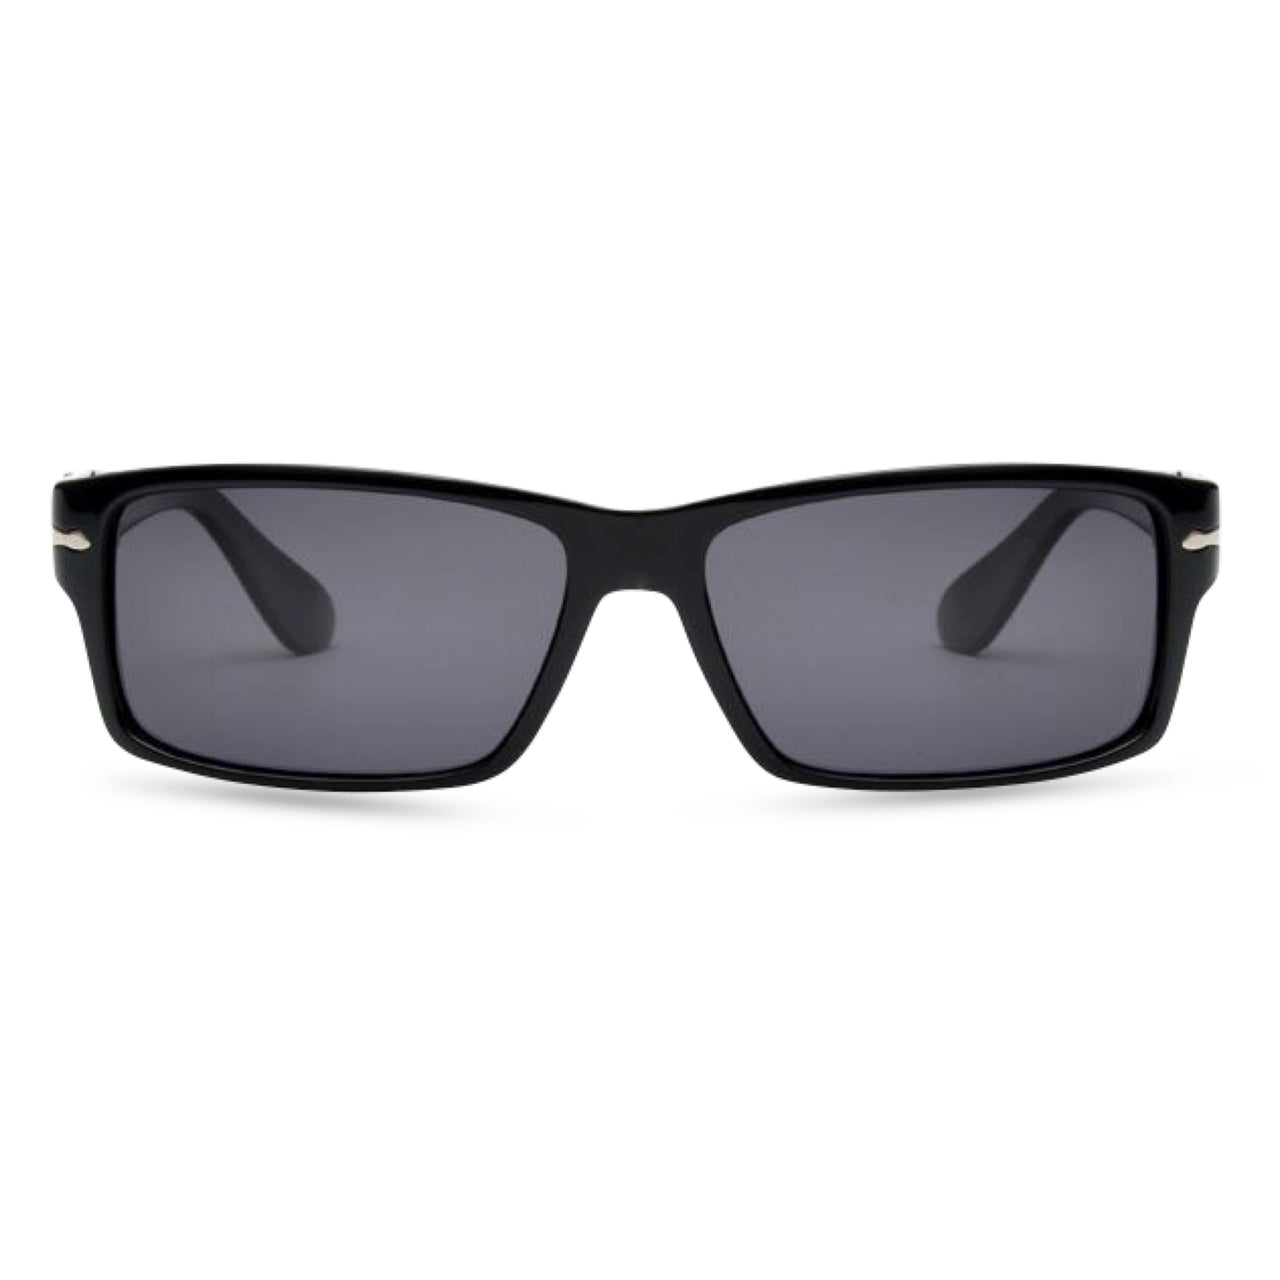 James B - Sunglasses Shiny Black / Grey Lens